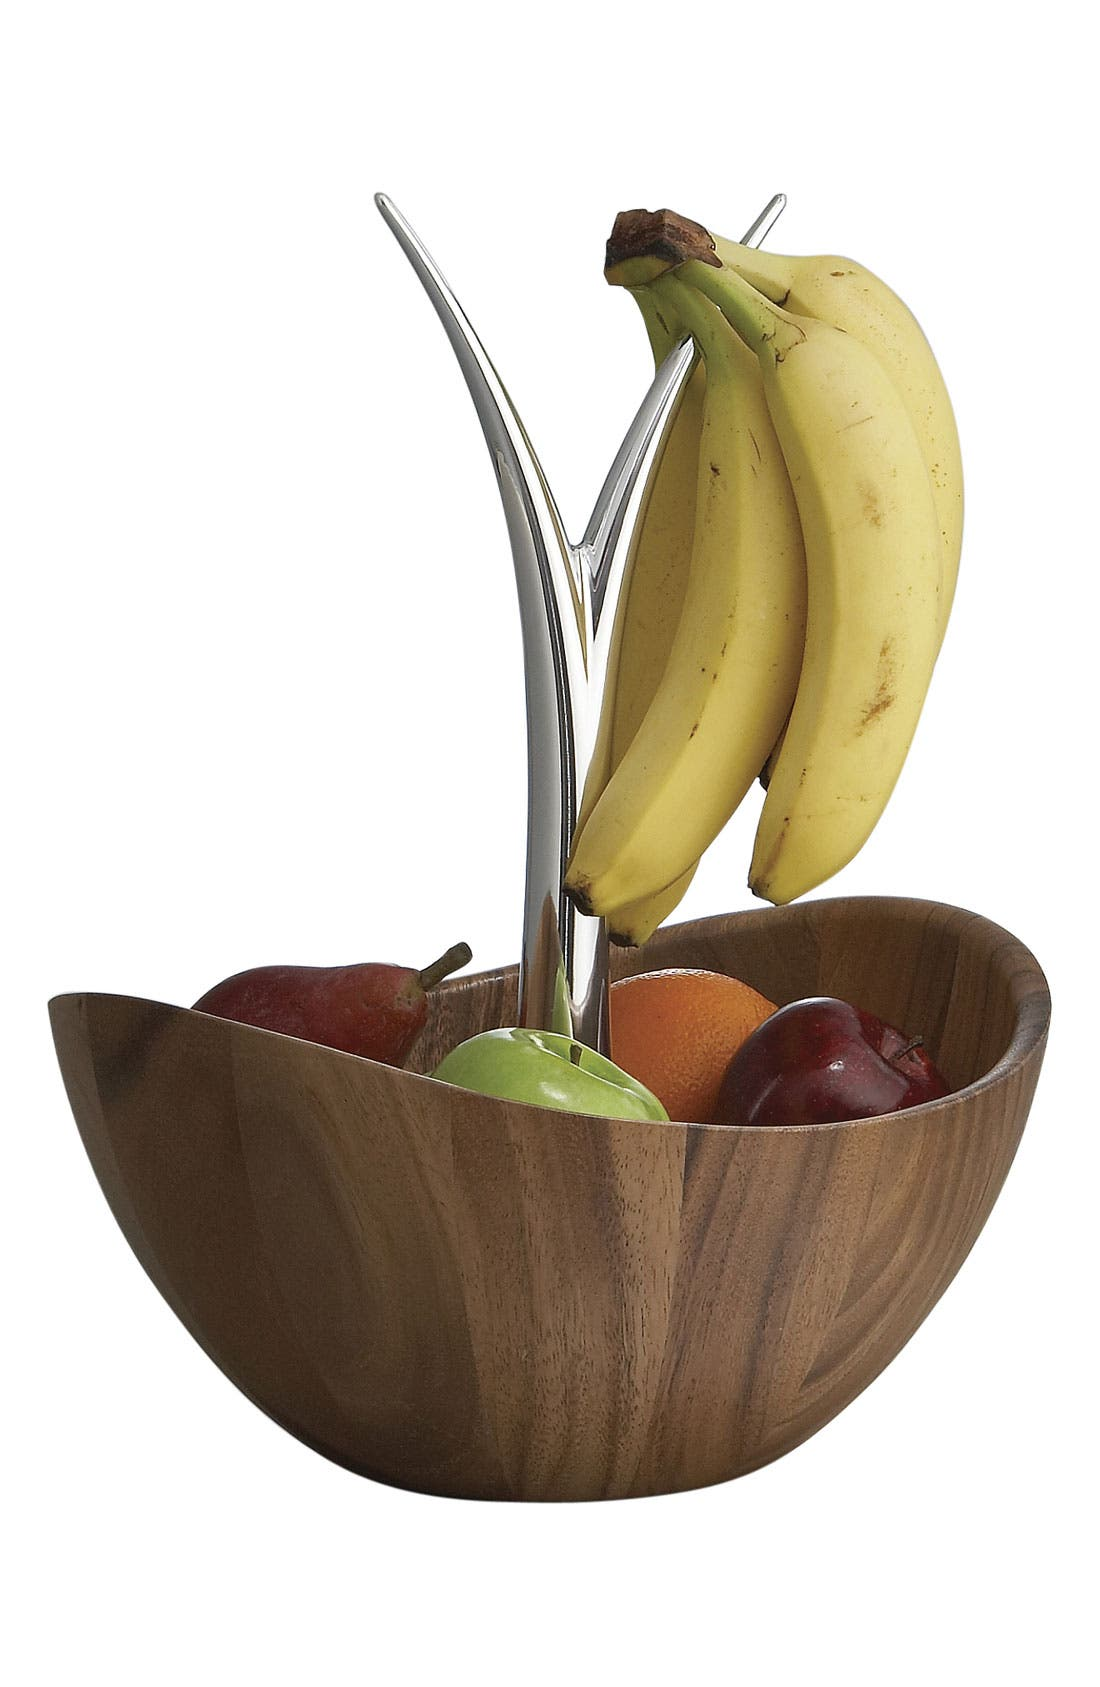 Main Image - Nambé 'Fruit Tree' Bowl